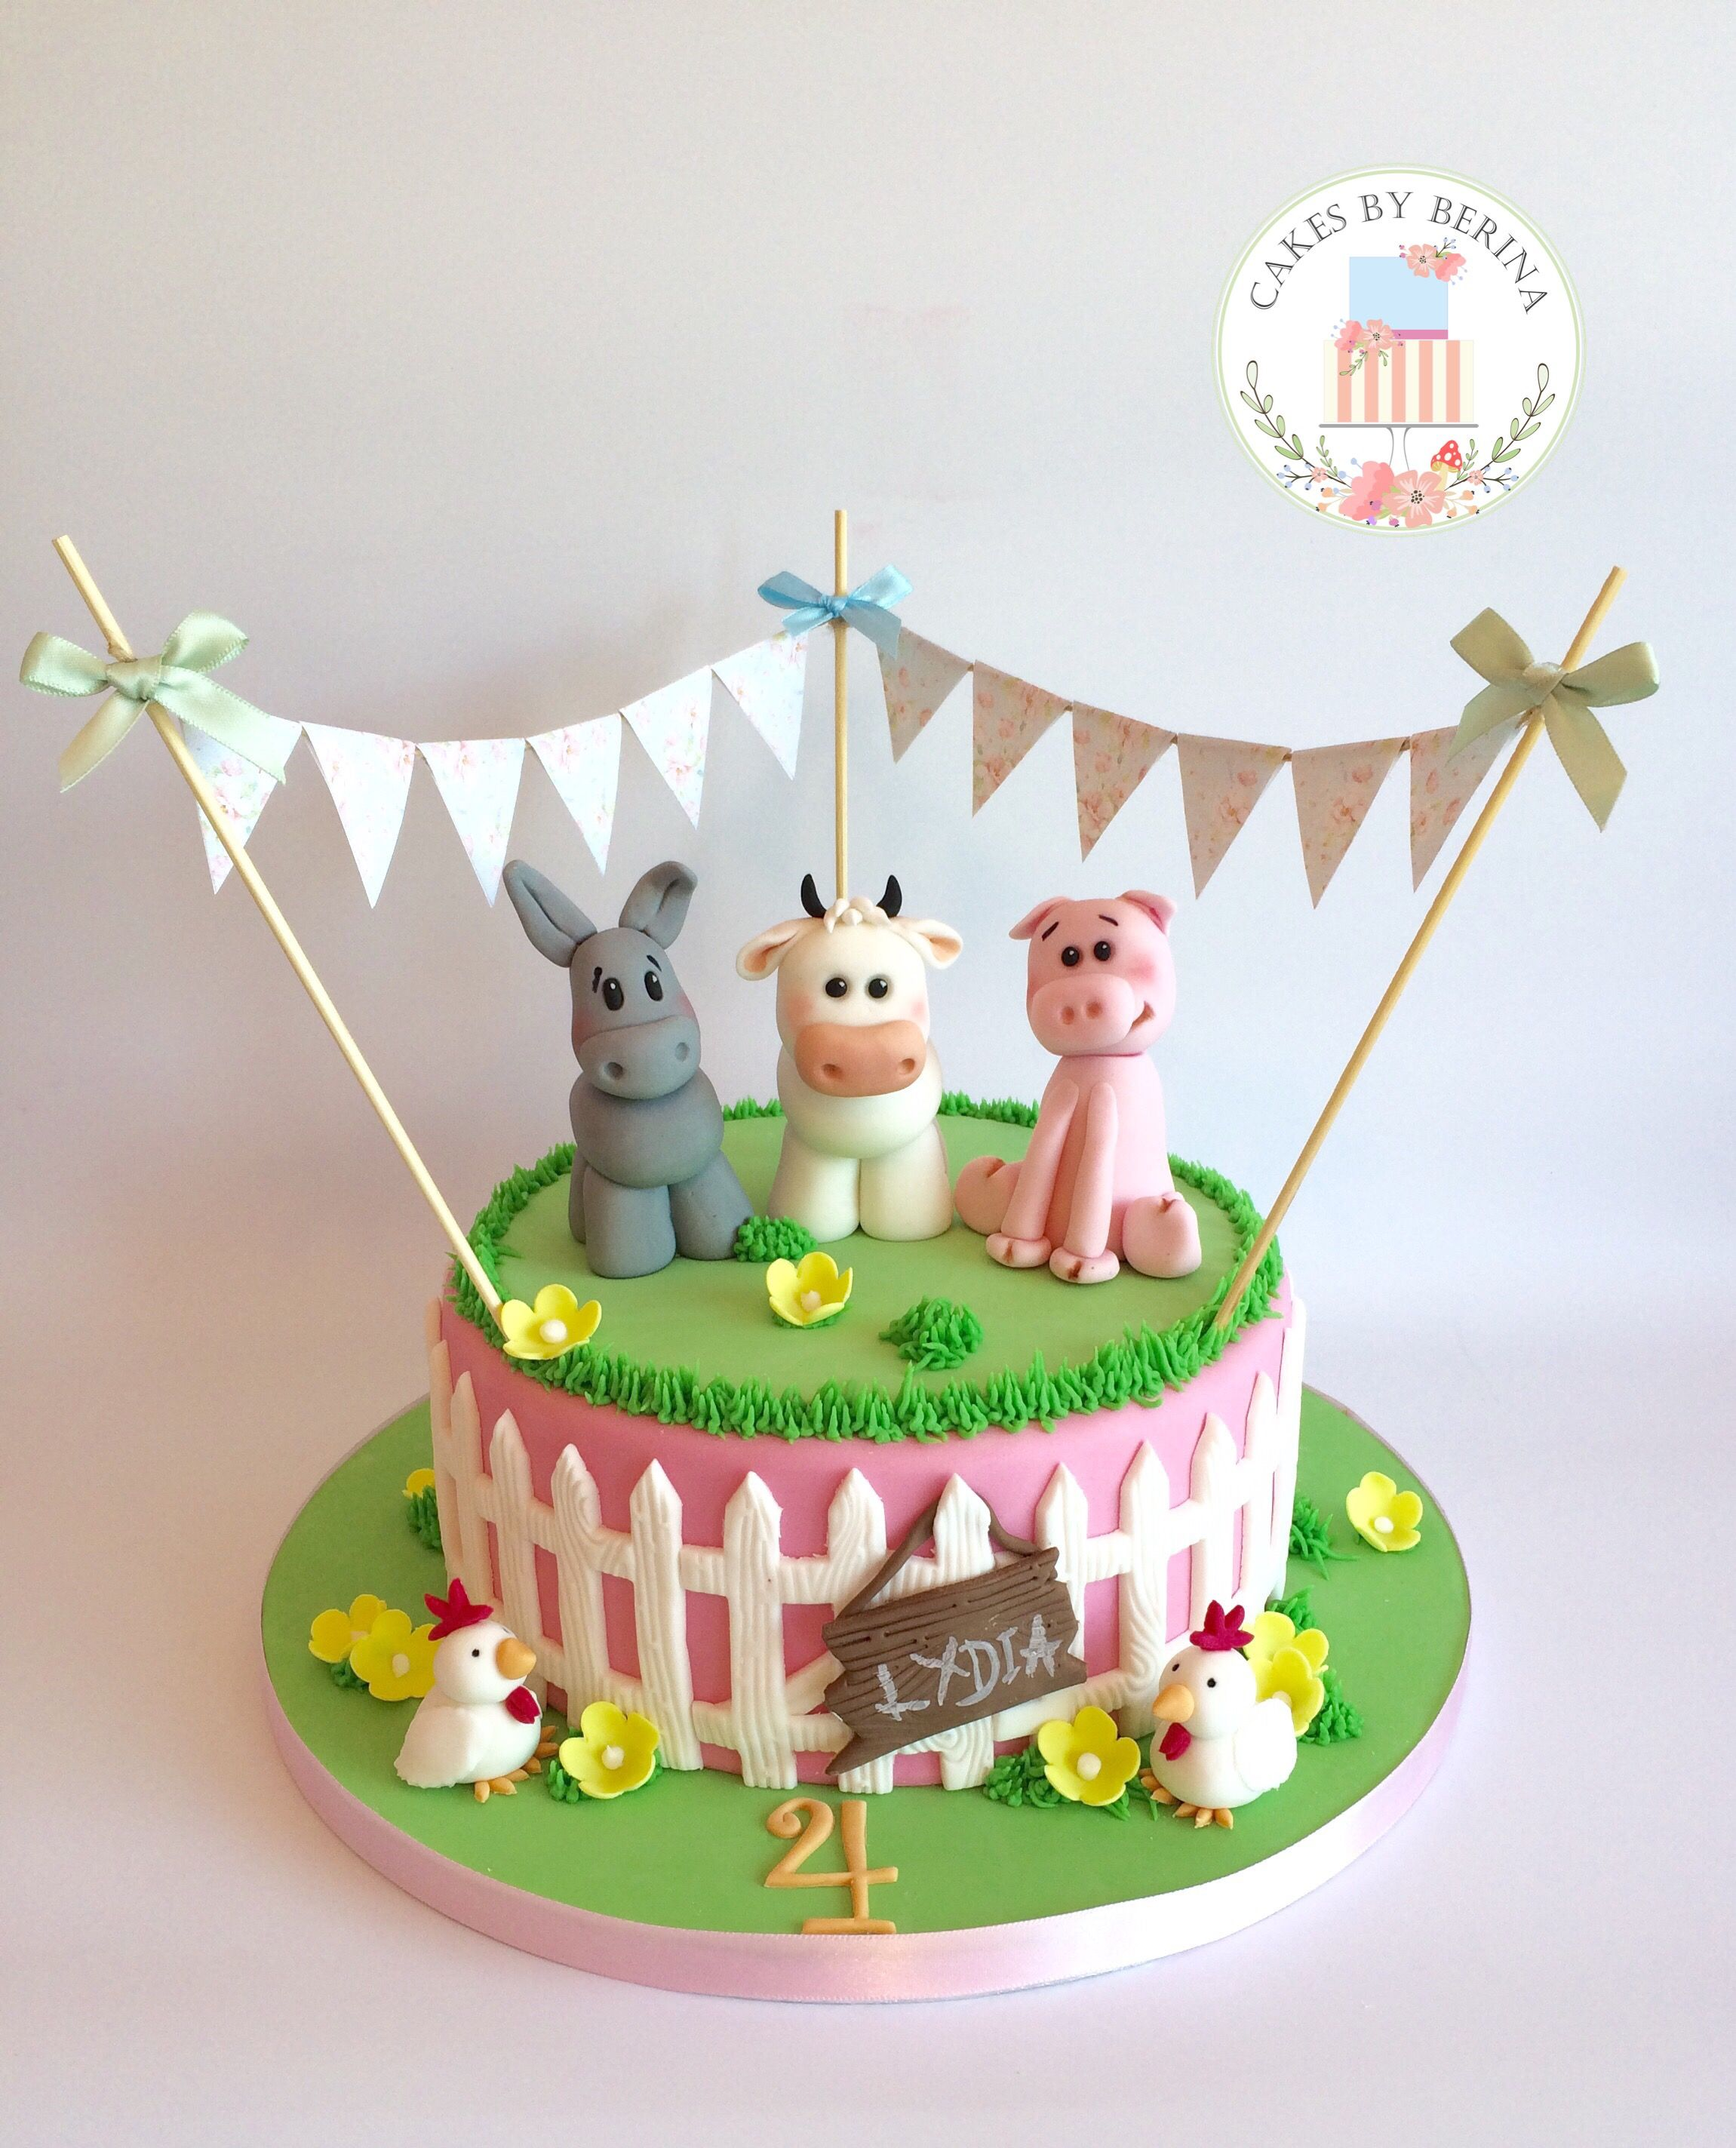 Girly farm animals birthday cake with edible cow donkey pig and